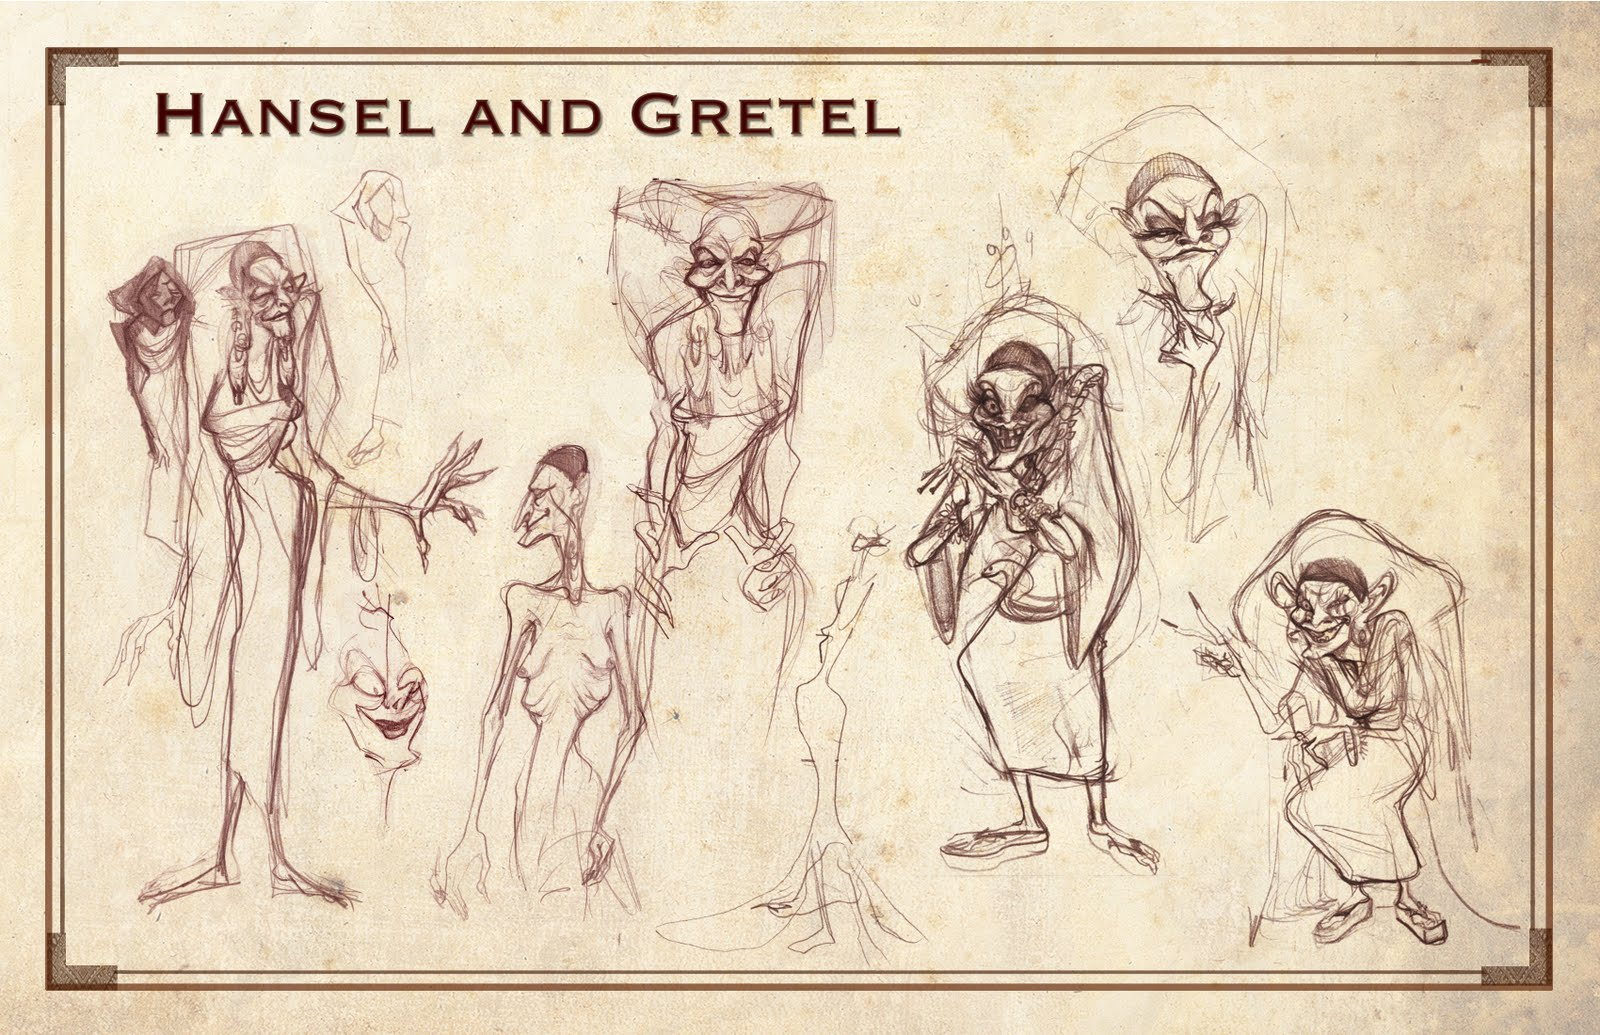 Drawn witchcraft hansel and gretel The Sangeun and Gretel the